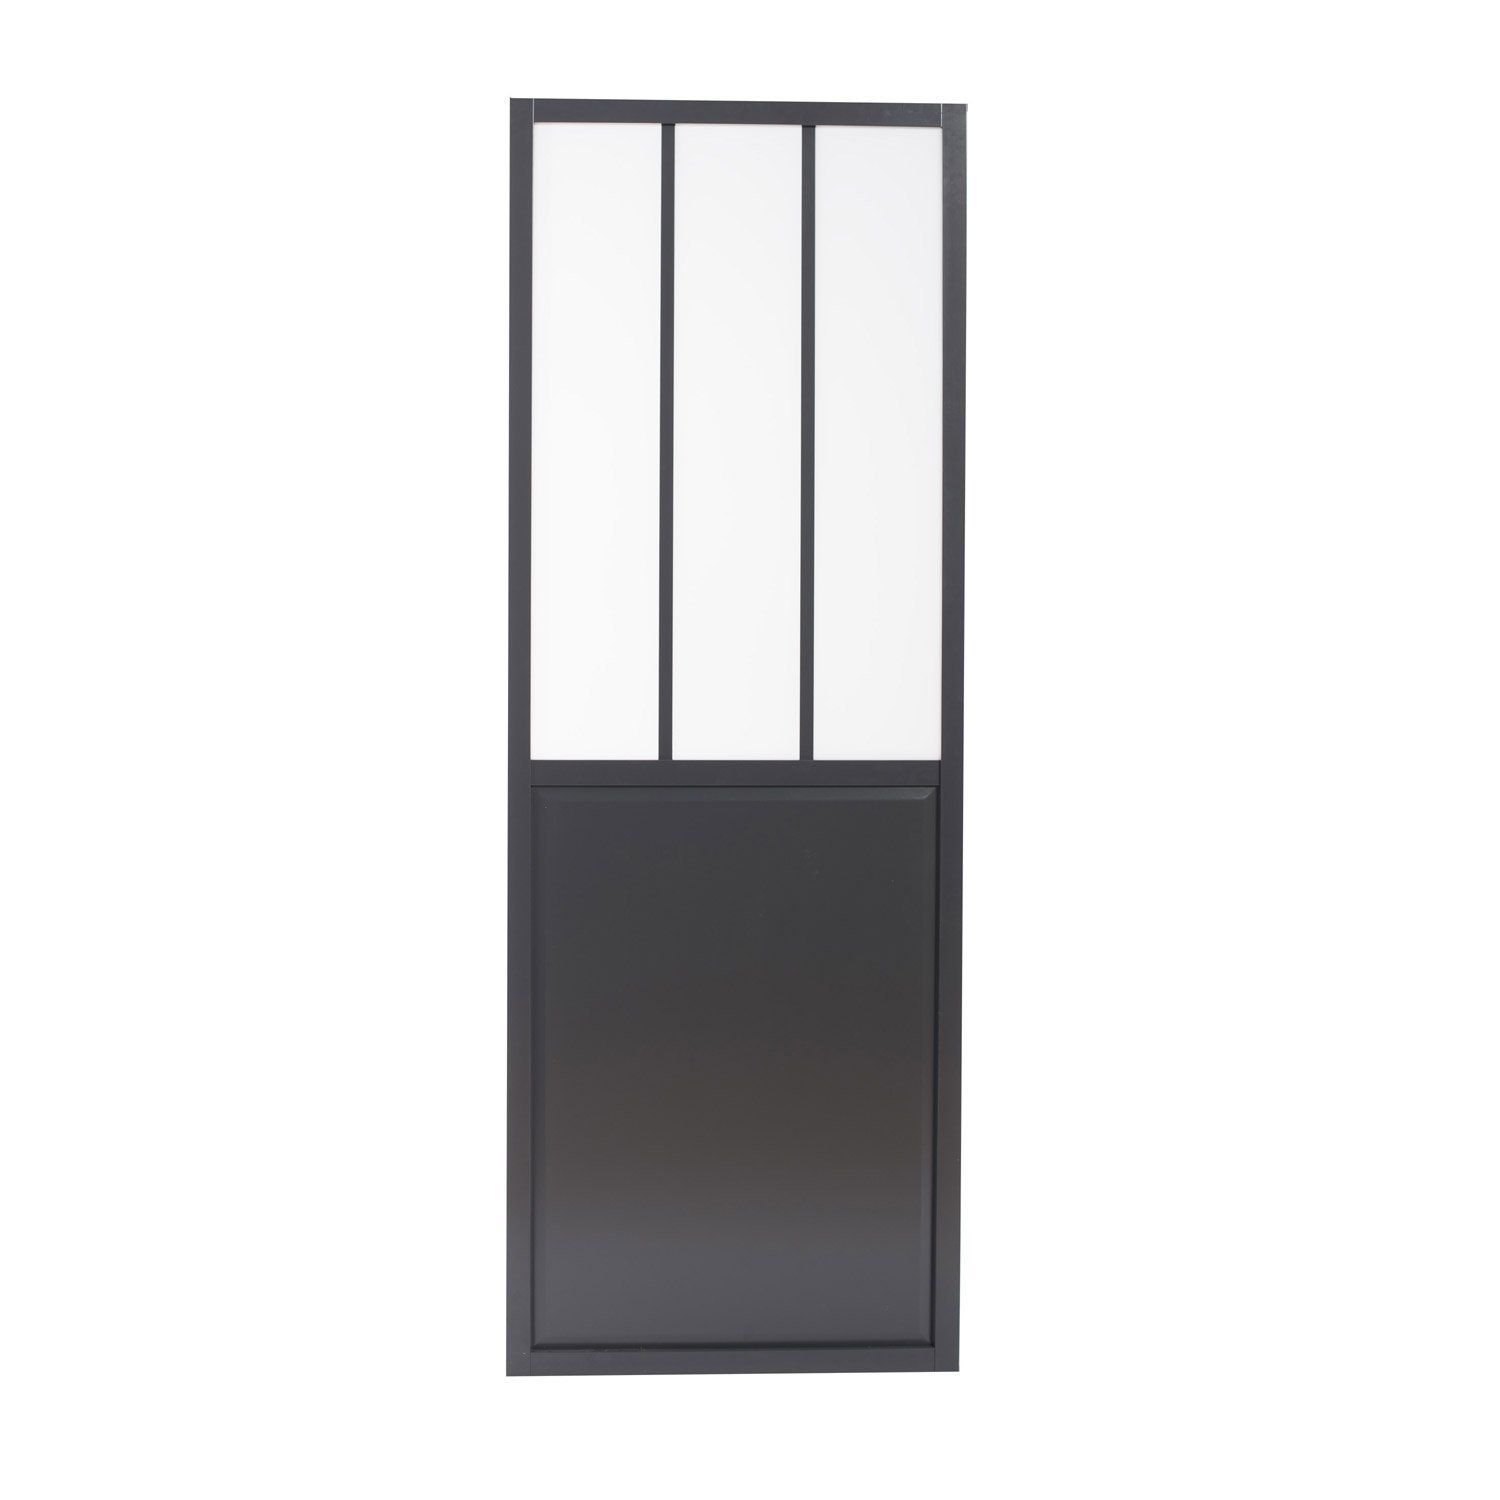 porte coulissante aluminium gris fonc verre tremp atelier artens 204 x 83 cm leroy merlin. Black Bedroom Furniture Sets. Home Design Ideas